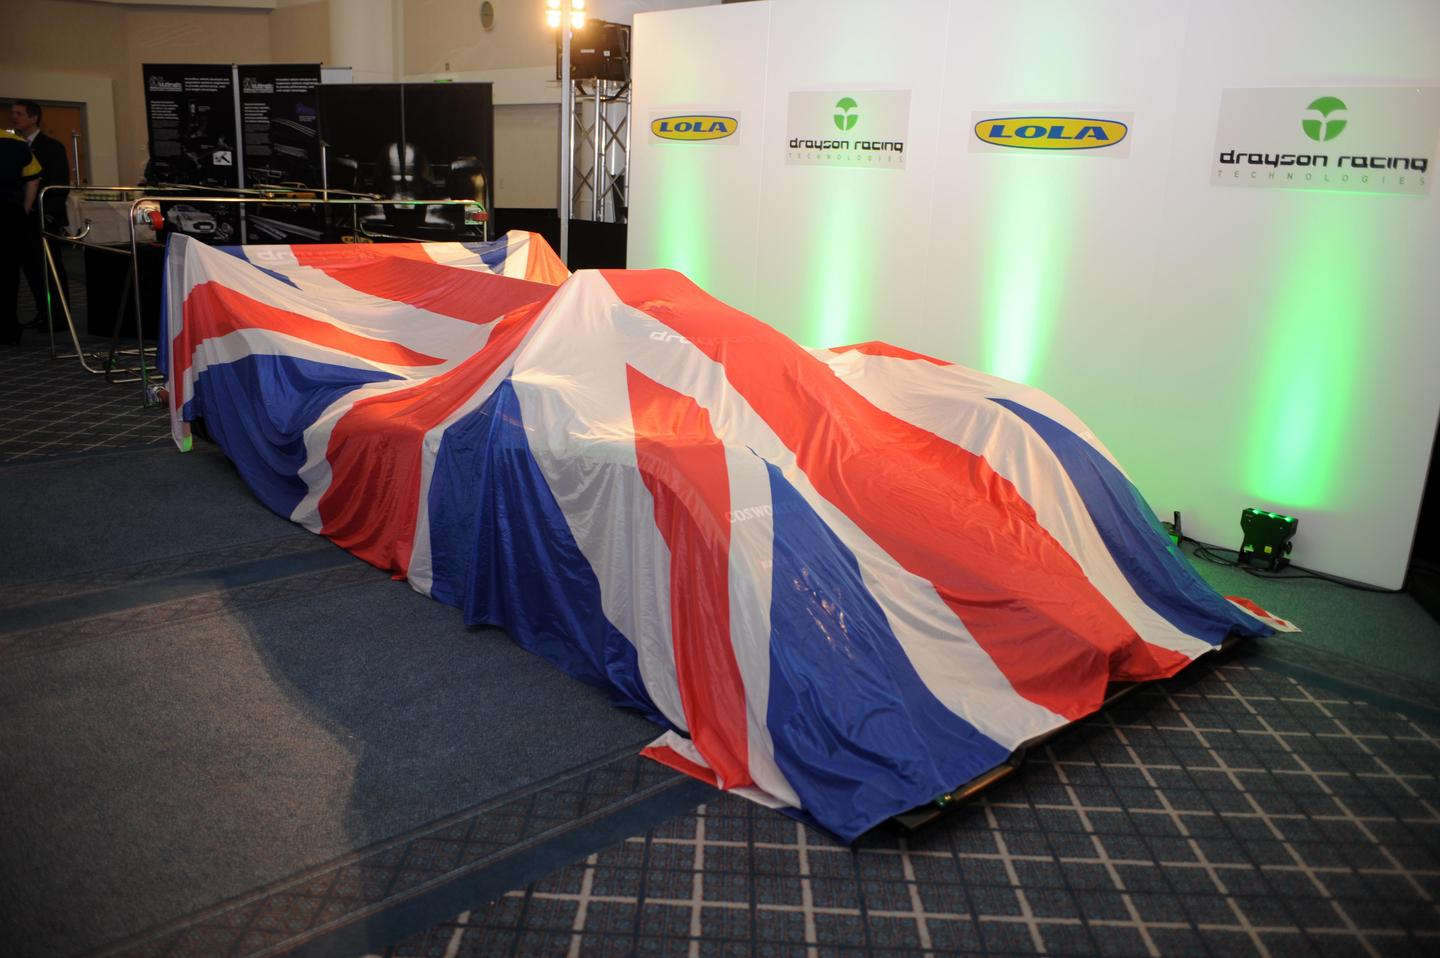 The Lola-Drayson B12/69EV ahead of its launch at the UK's 2012 Low Carbon Racing Conference at the National Exhibition Centre in Birmingham